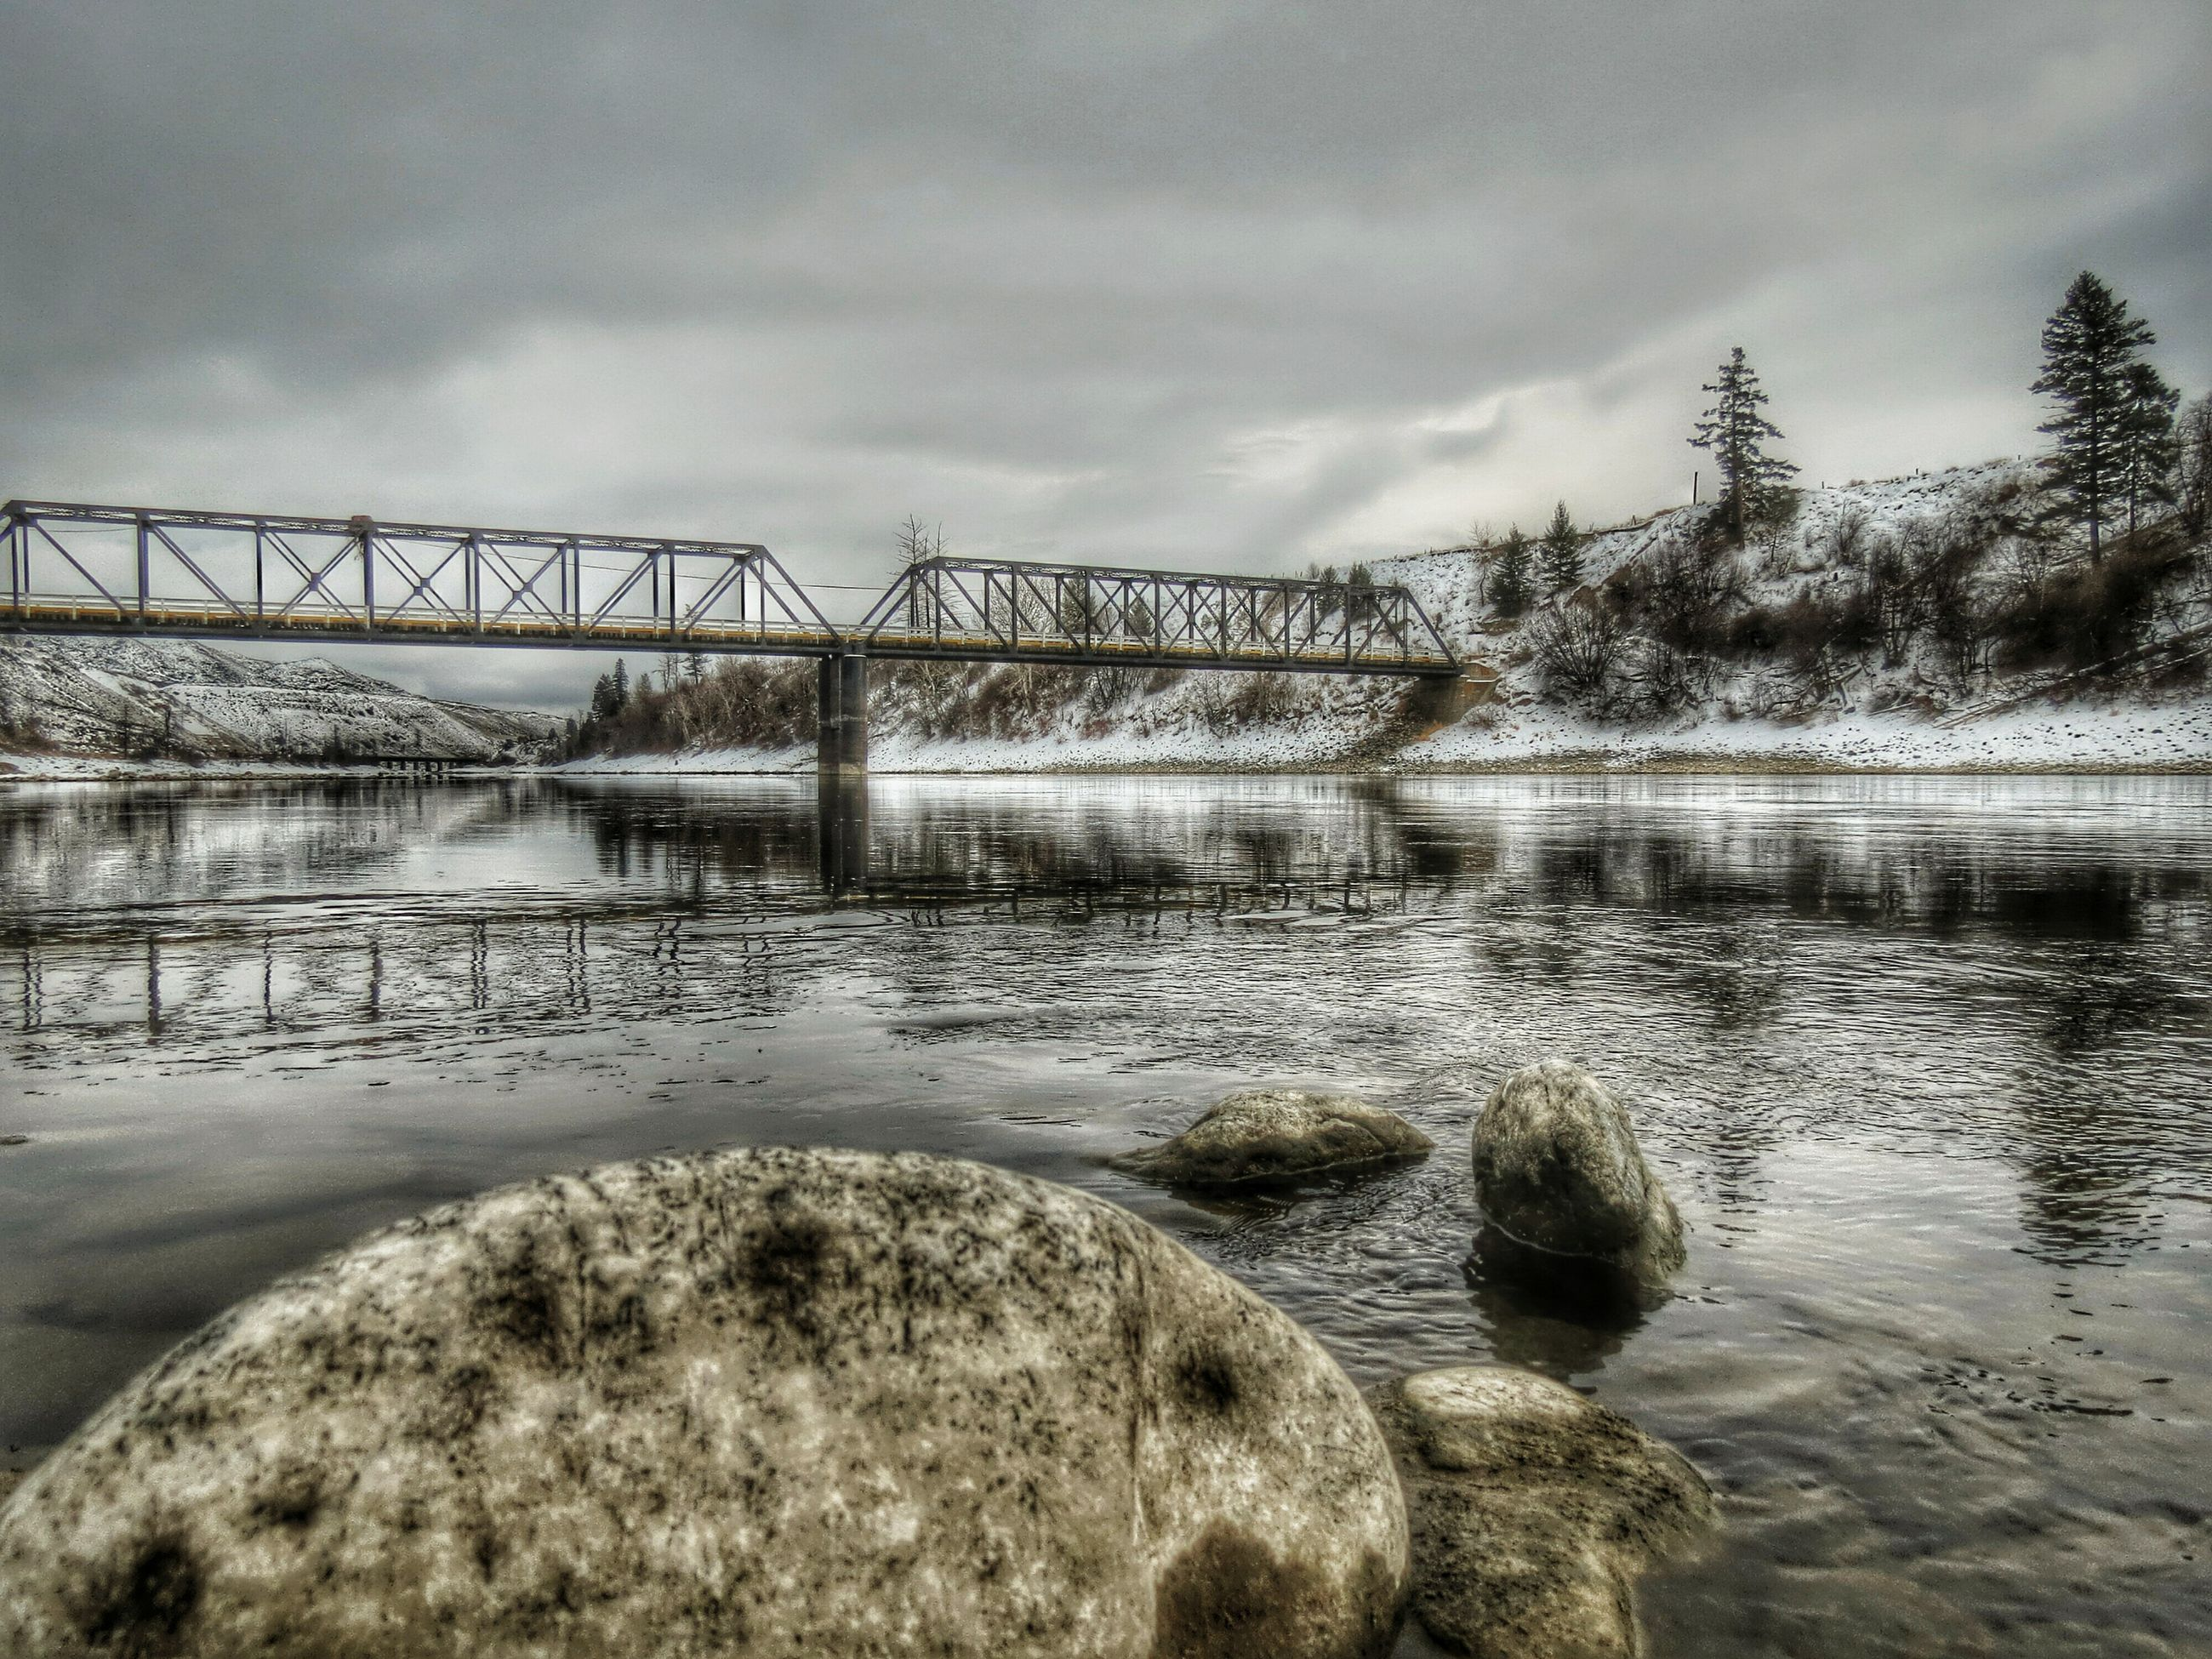 water, sky, cloud - sky, cloudy, river, connection, bridge - man made structure, tranquility, nature, built structure, tranquil scene, lake, cloud, scenics, weather, reflection, architecture, beauty in nature, rock - object, overcast